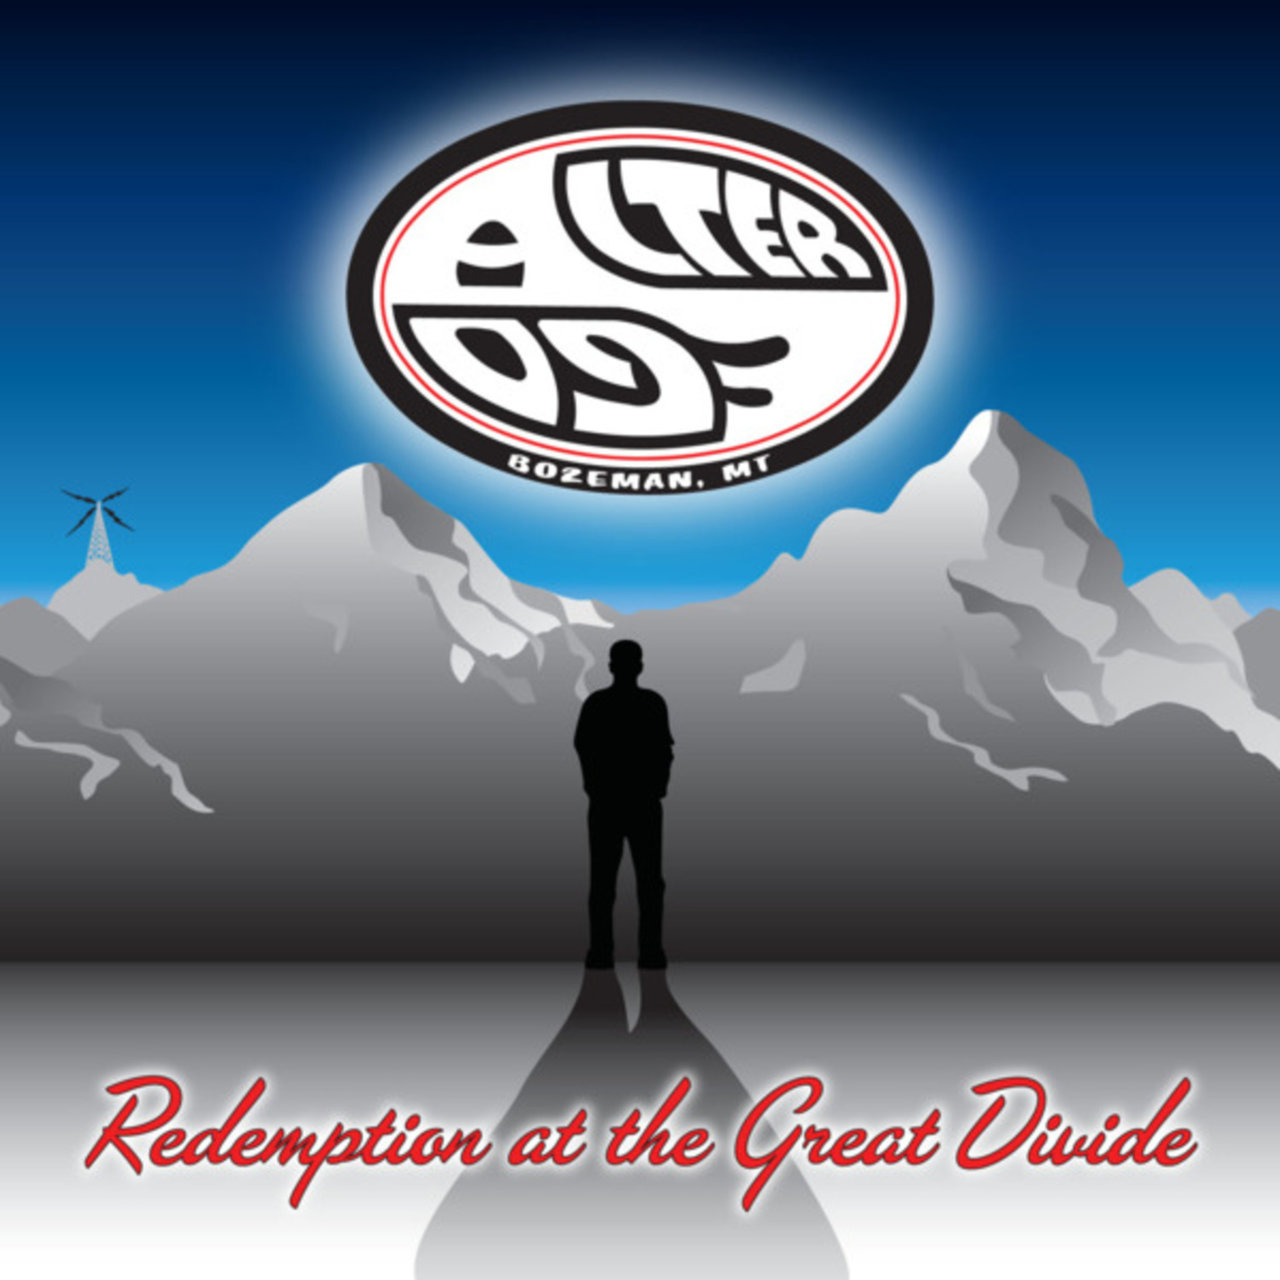 Redemption at the Great Divide